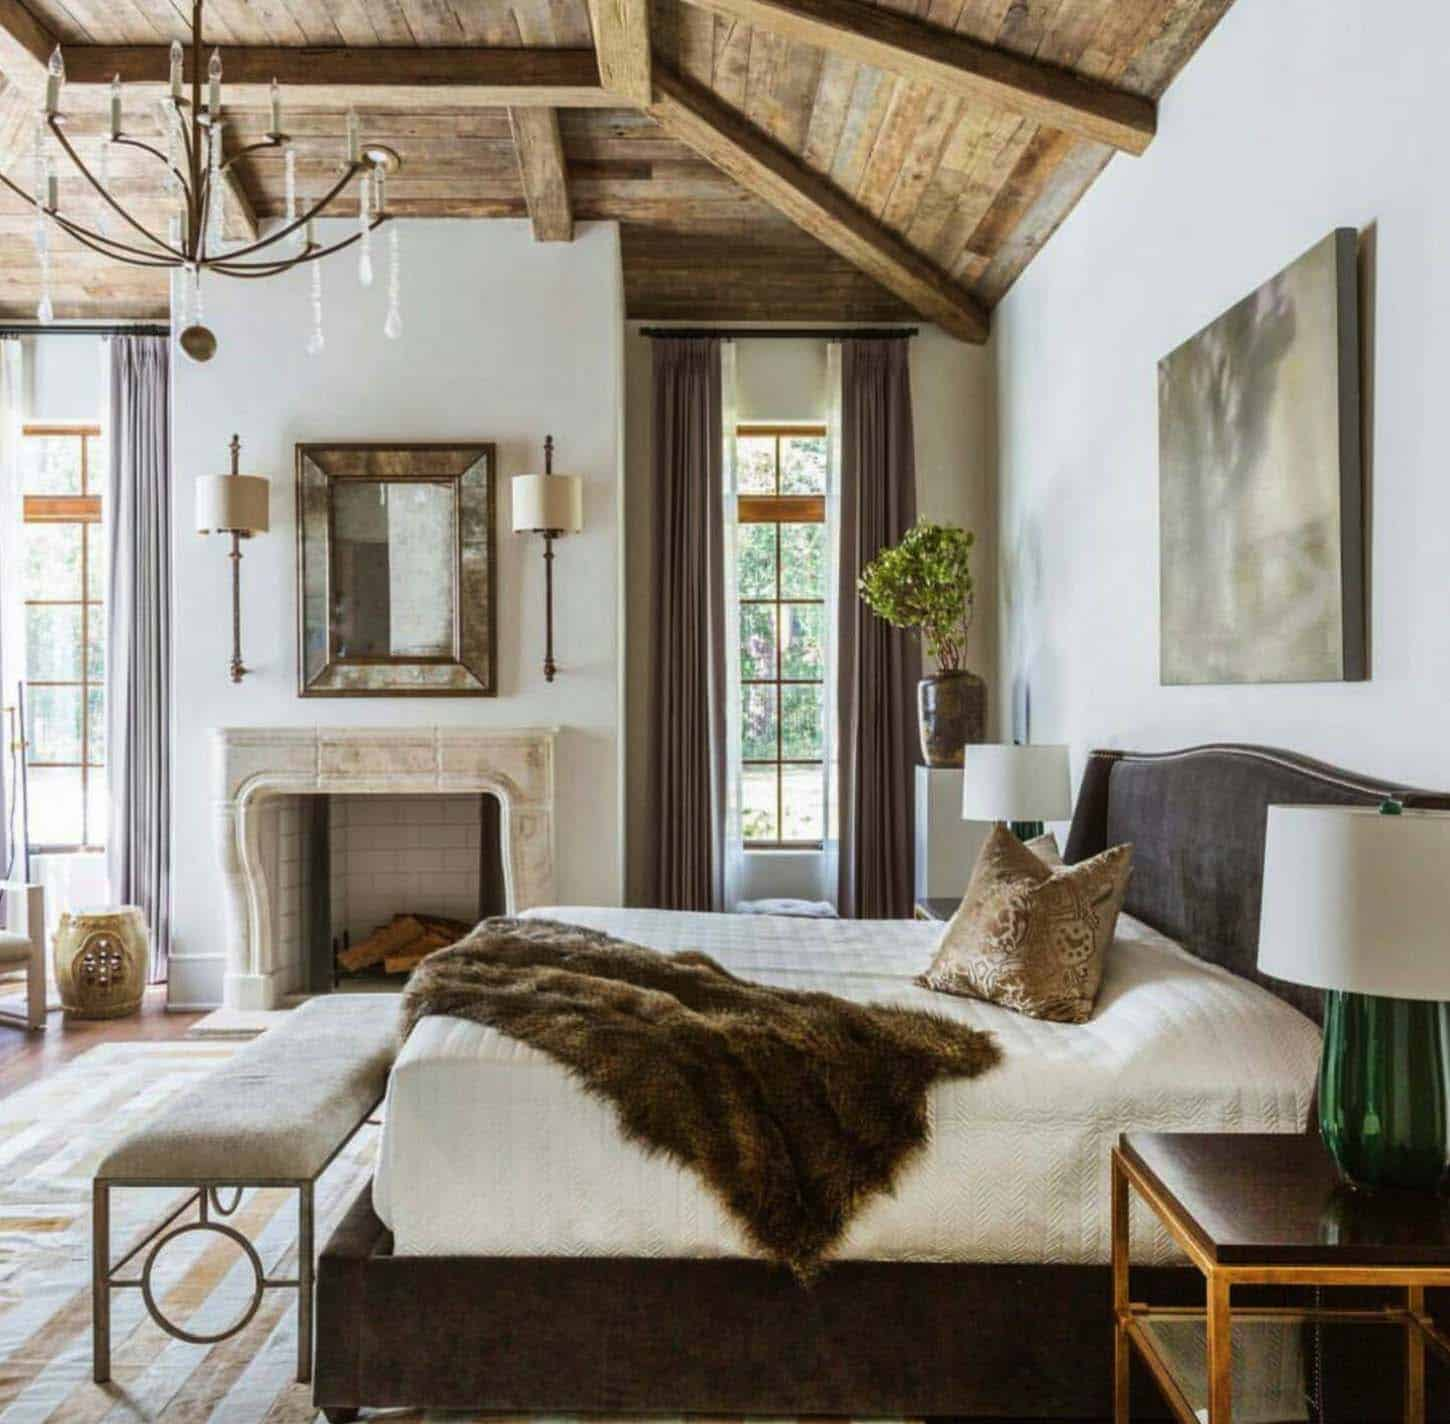 Farmhouse Bedroom: 25 Absolutely Breathtaking Farmhouse Style Bedroom Ideas